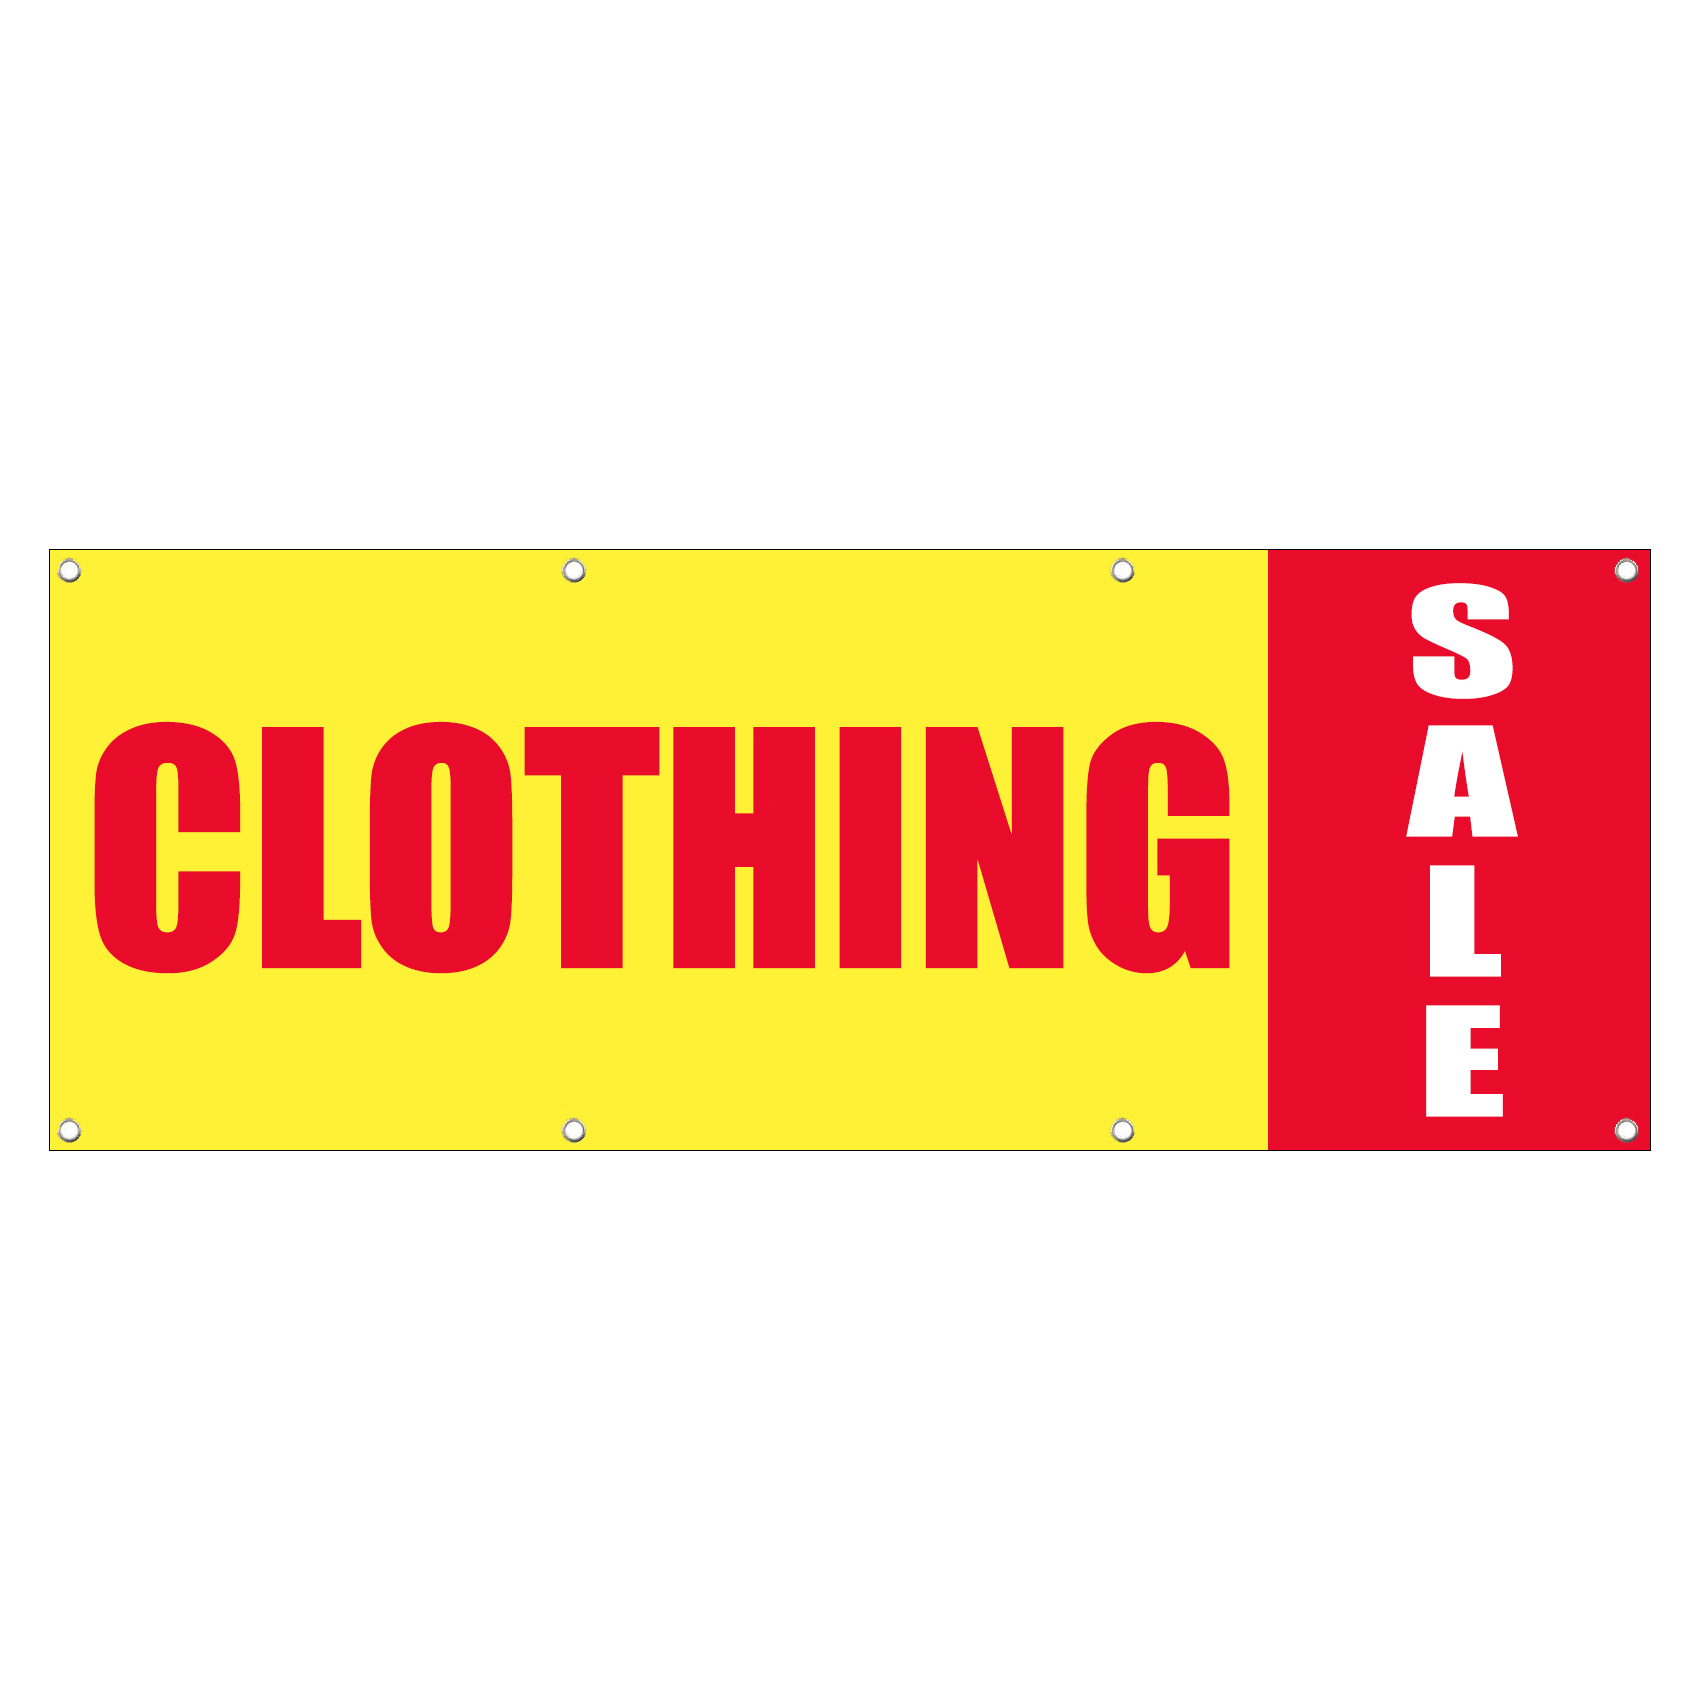 Clothing Sale Promotion Business Sign Banner 4 Feet X 2